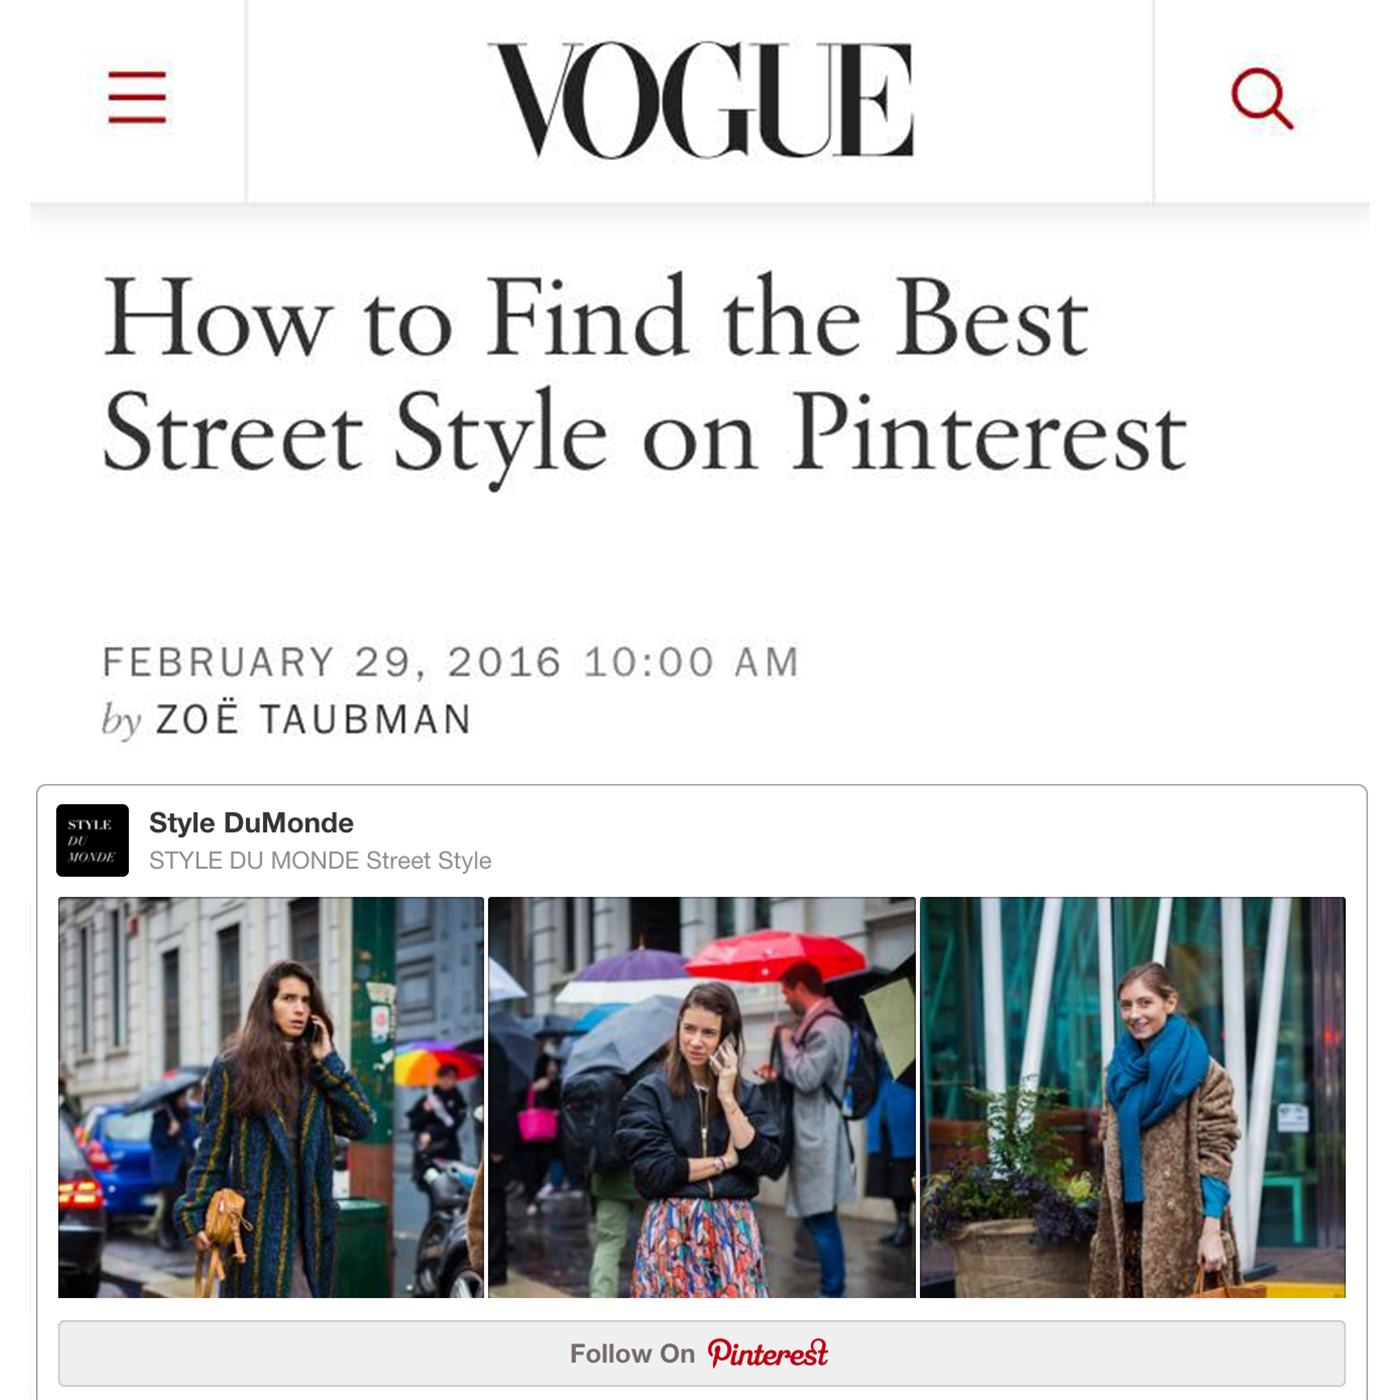 Vogue-StyleDuMonde the Best Street Style on Pinterest-feature